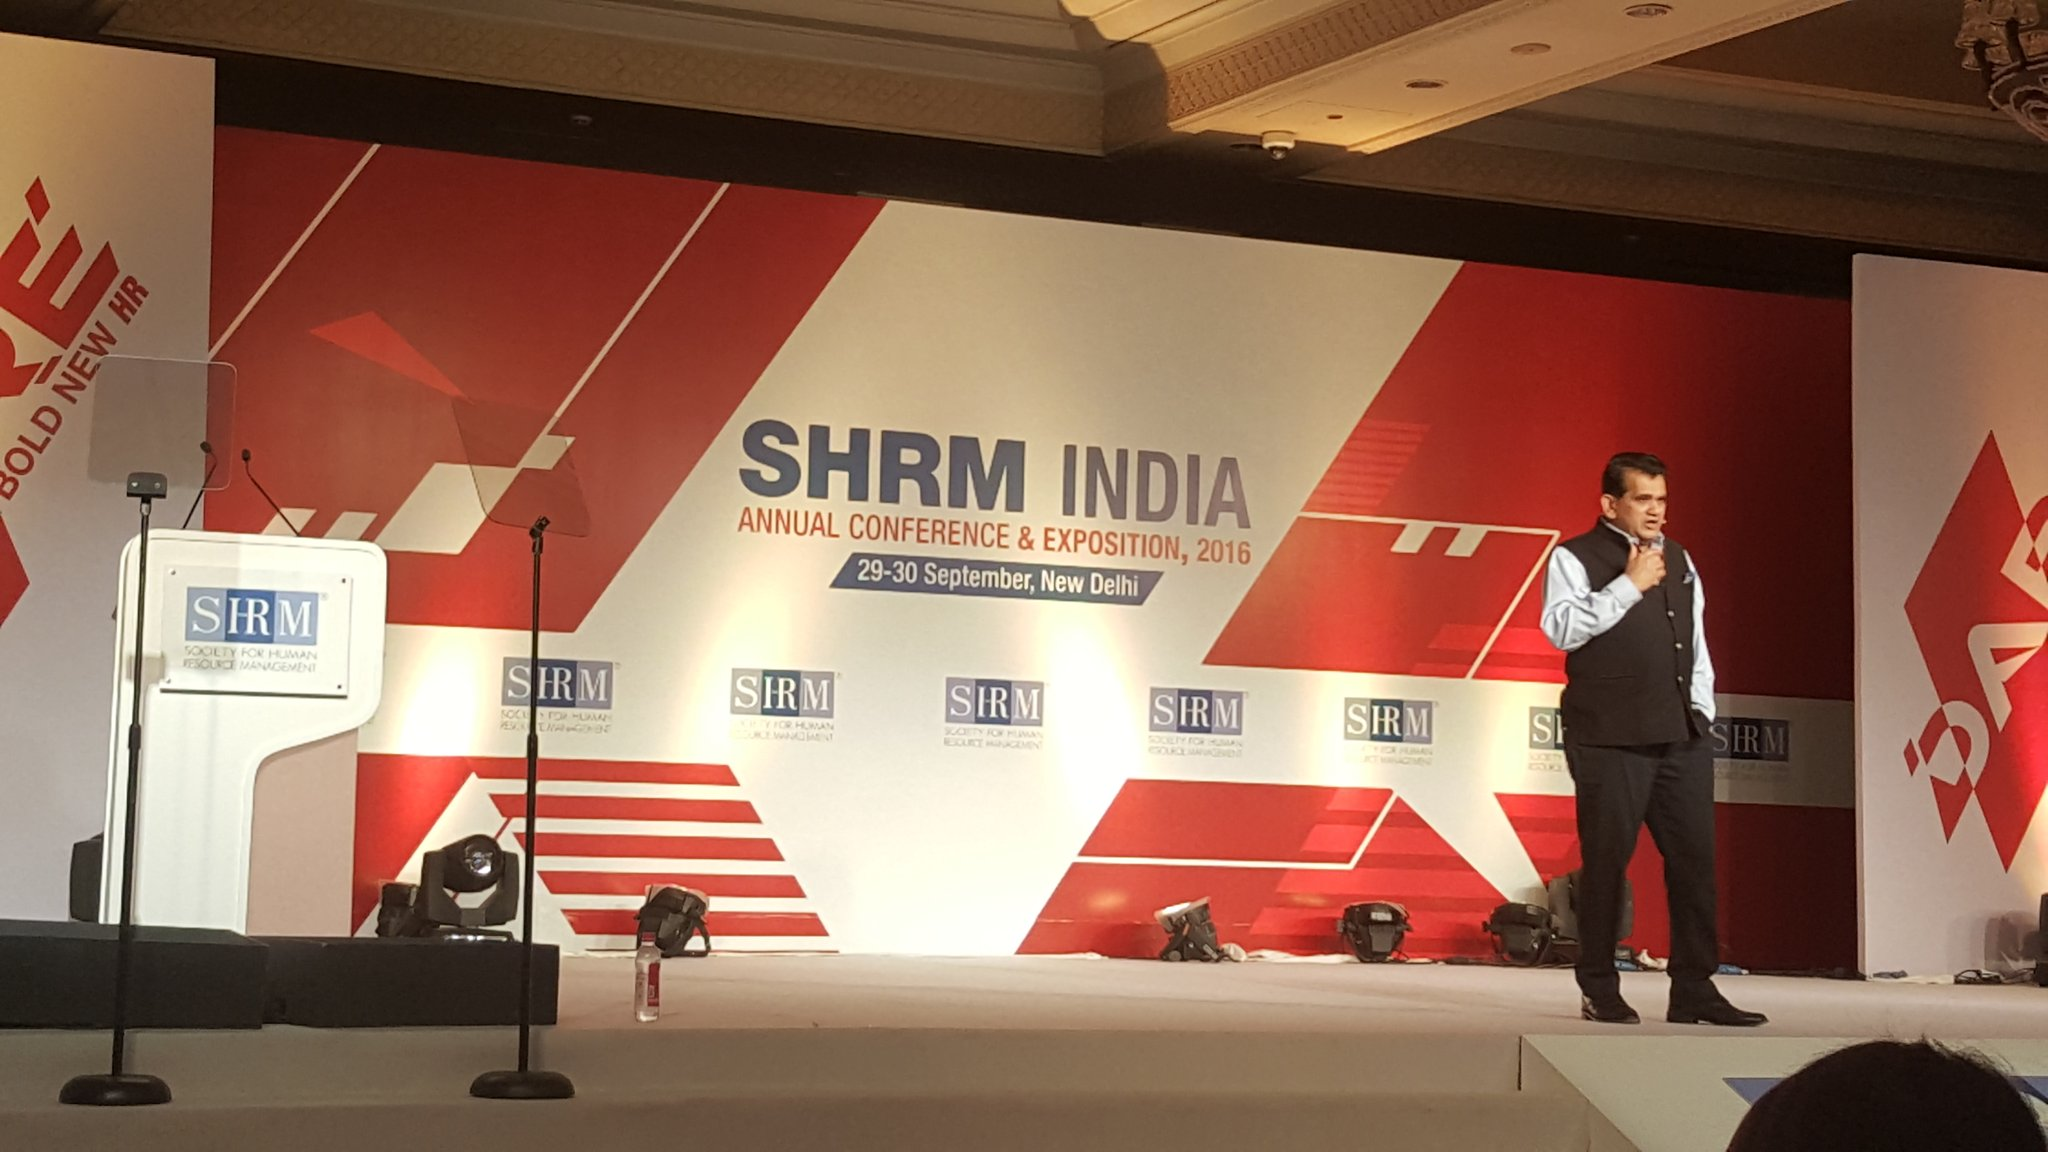 Insights on India's transformation with Amitabh Kant #shrmi16 @SHRMindia https://t.co/wwpnOPifRC